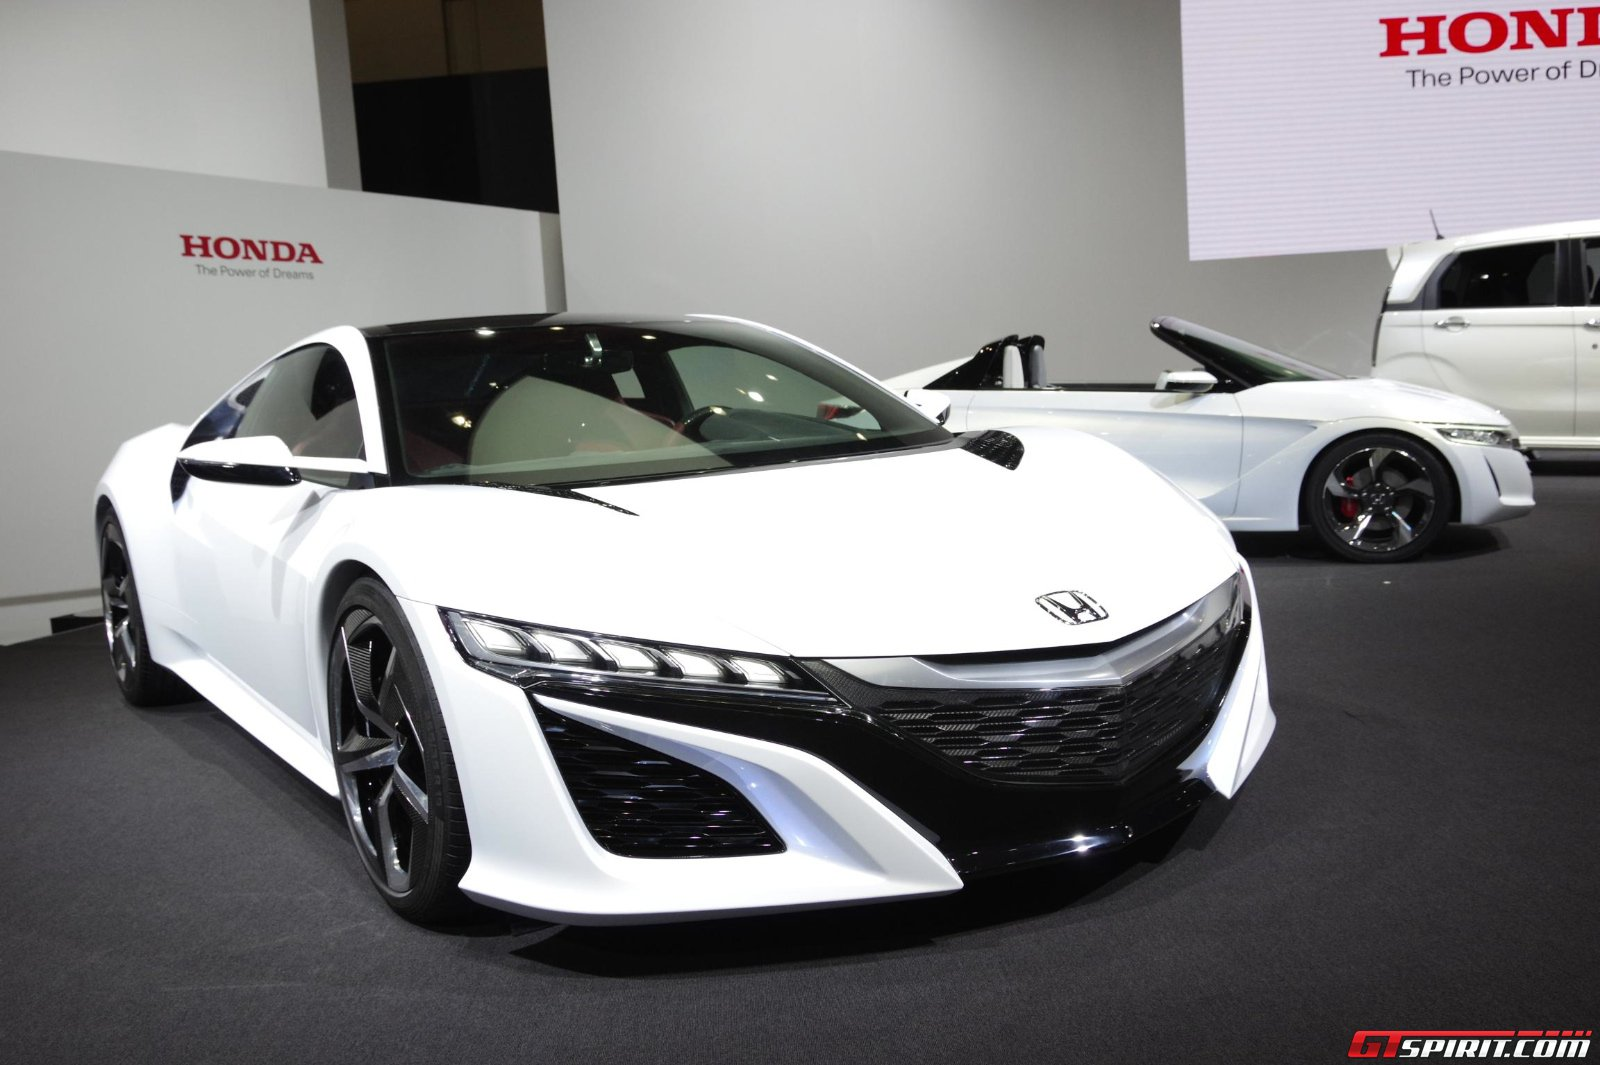 ... Honda NSX Concept. on multiple meaning words worksheets for 2nd grade